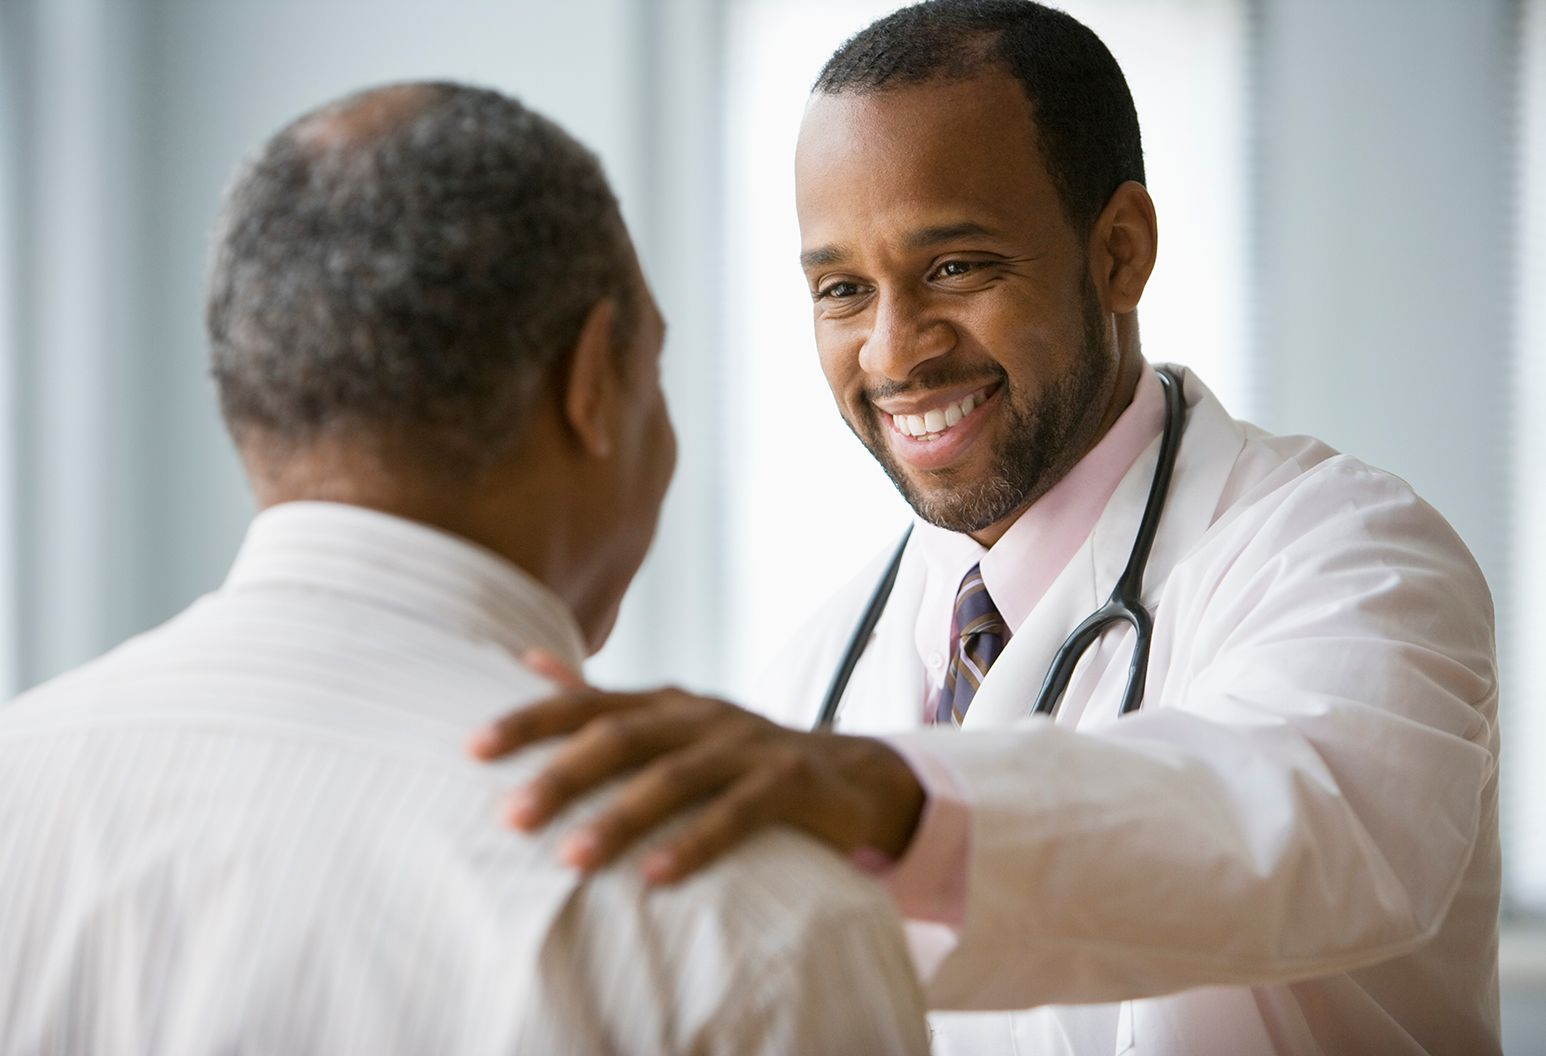 Doctor smiling and greeting patient